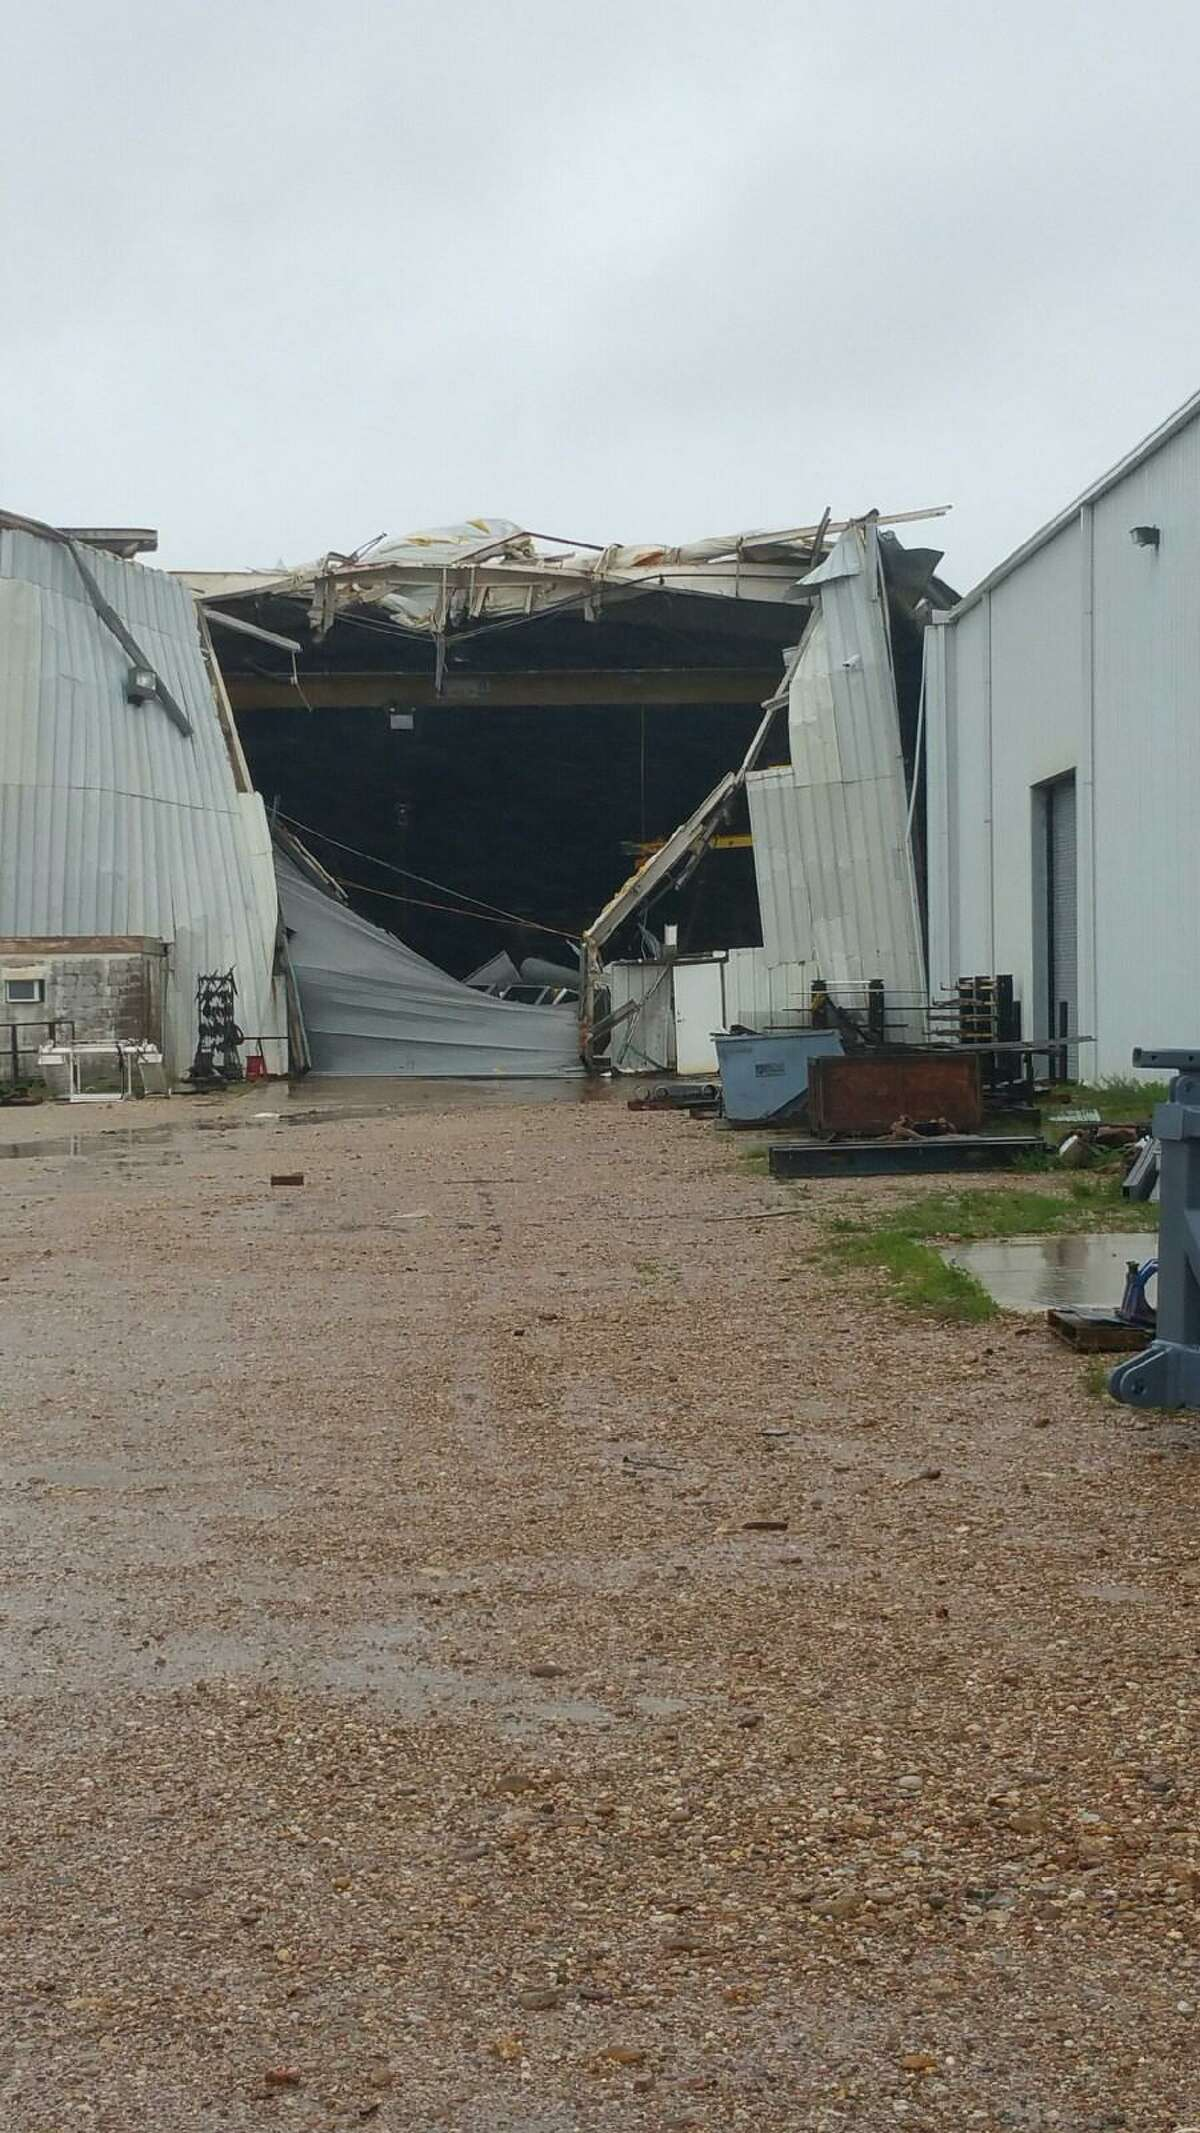 Damage done to the Dragon Rig Sales and Services manufacturing facility west of Victoria, Texas. The area took damage as Hurricane Harvey moved in during the weekend.